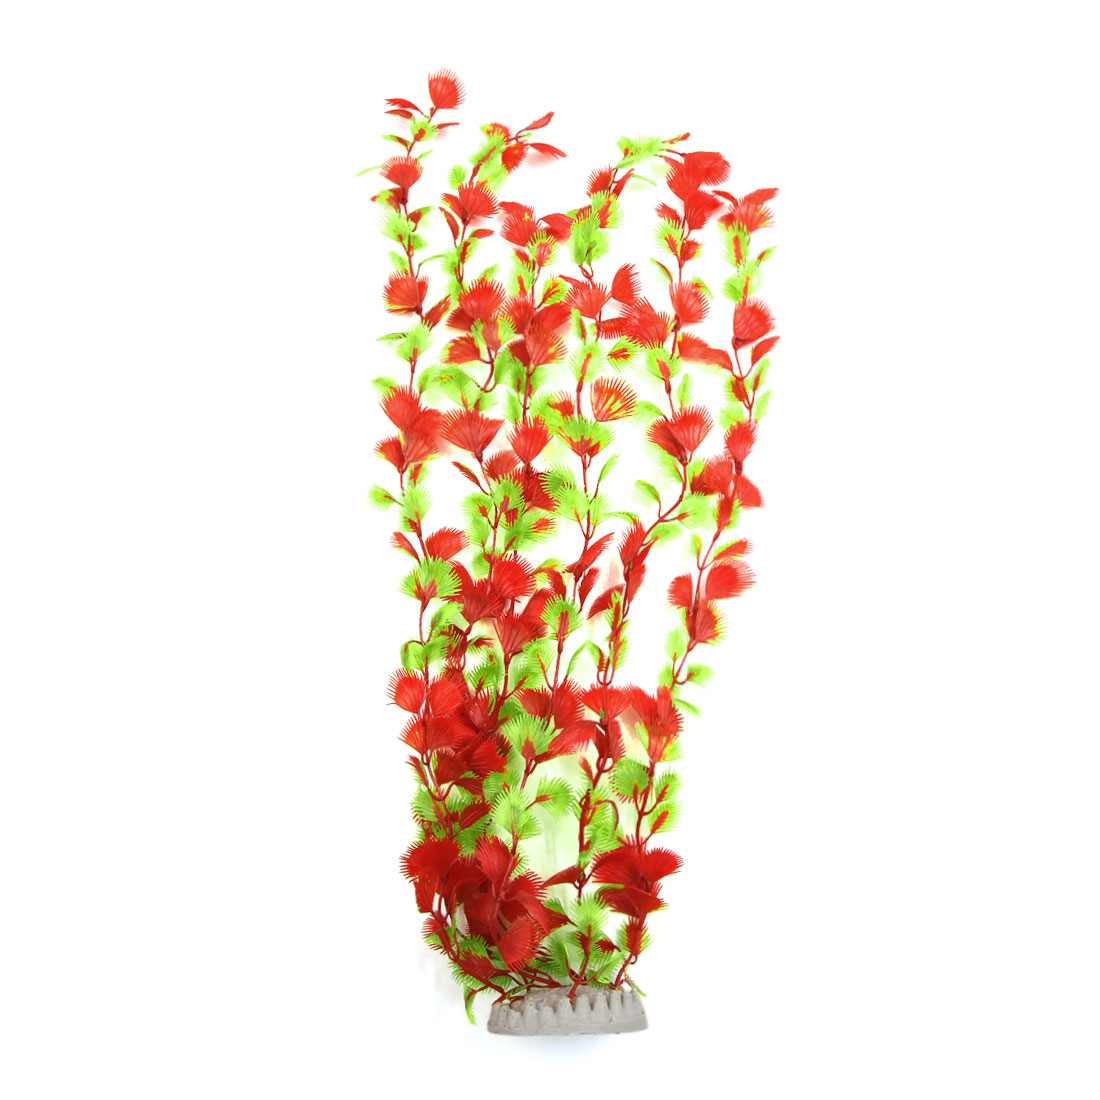 Red Plastic Water Plant Grass Aquarium Fish Tank Decoration with Ceramic Base